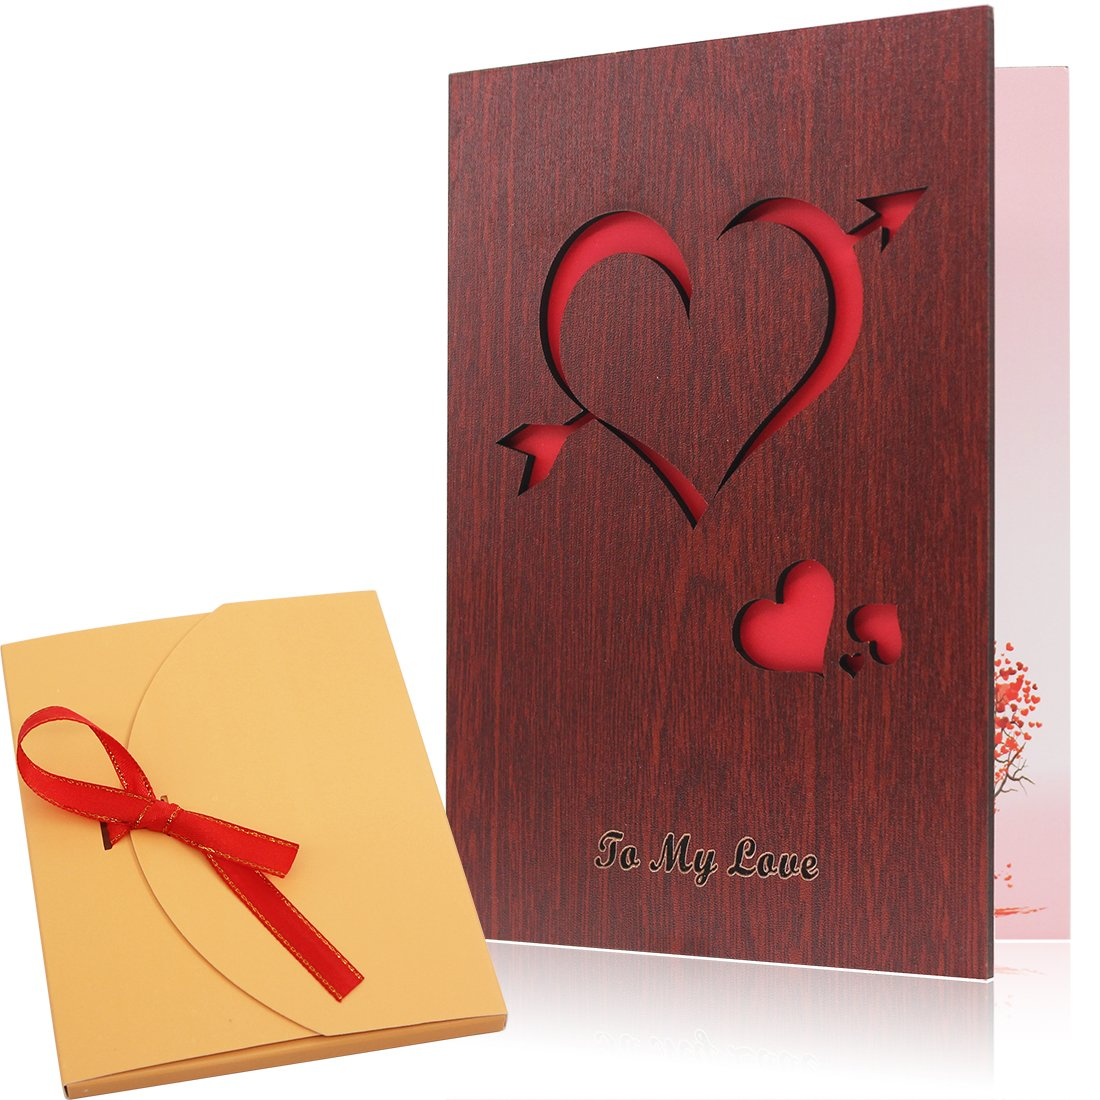 Handmade wood love greeting card valentine day present gift handmade blank wood card love greeting card valentines day cards made with red walnut polywood the kristyandbryce Images